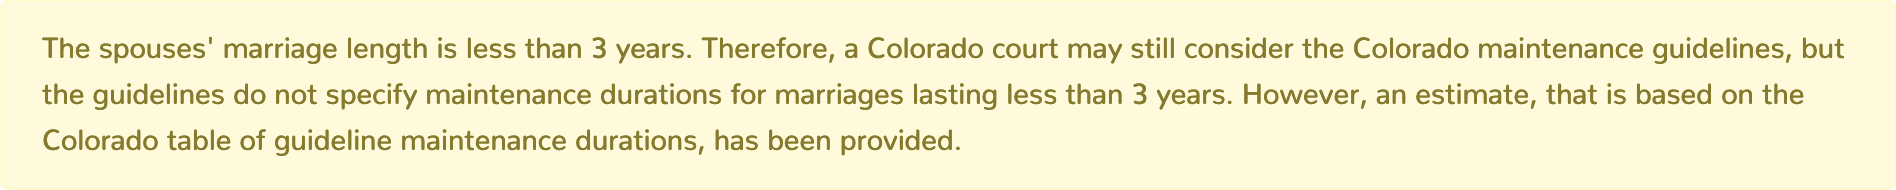 Colorado Maintenance Calculator marriage length less than three years